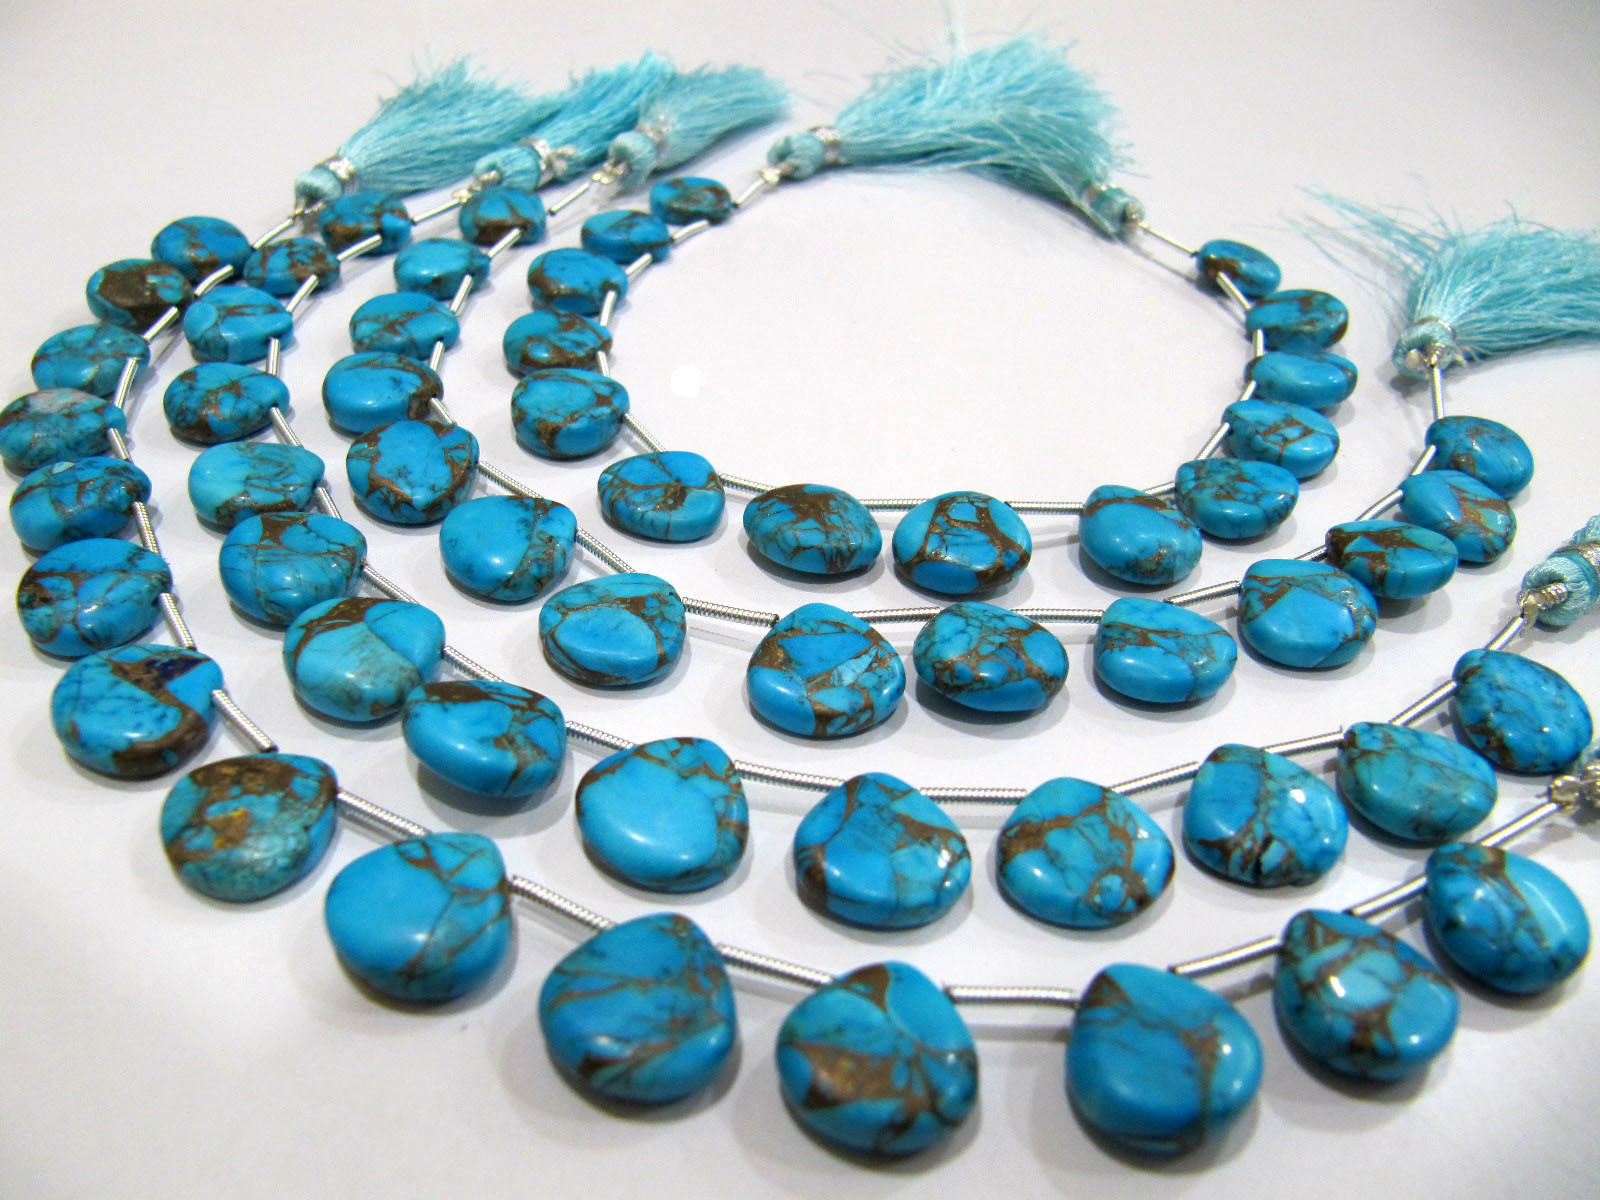 Sky Blue Oyster Turquoise Pear Shape Smooth  beads